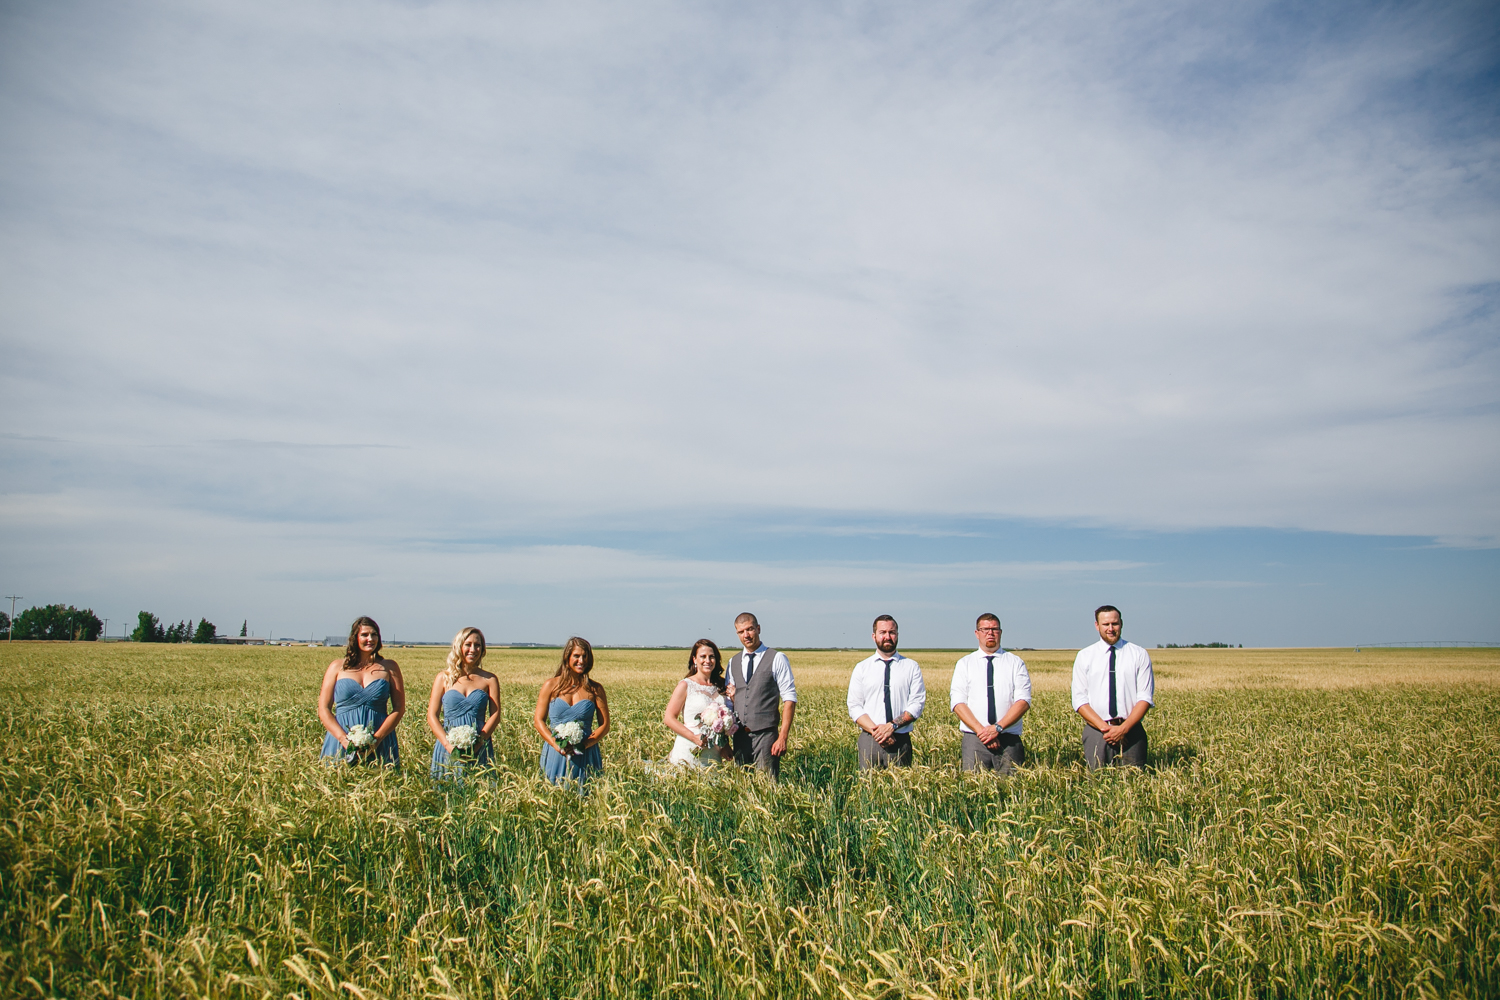 lethbridge-wedding-photography-love-and-be-loved-photographers-ashlin-anne-backyard-wedding-image-picture-photo-358.jpg